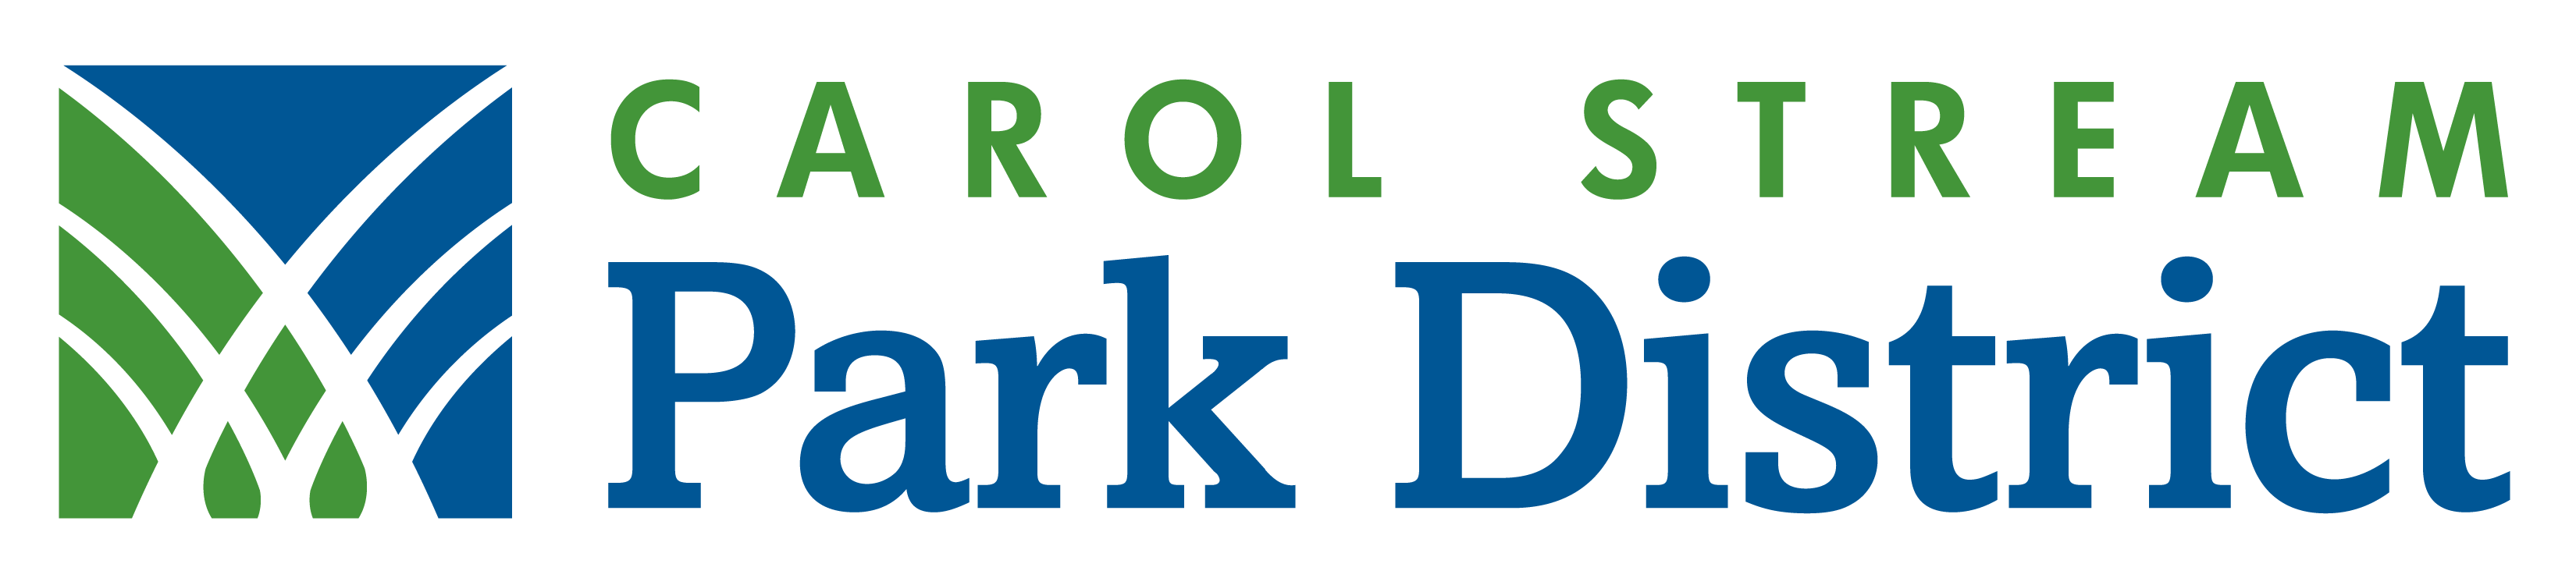 Carol Stream Park District logo